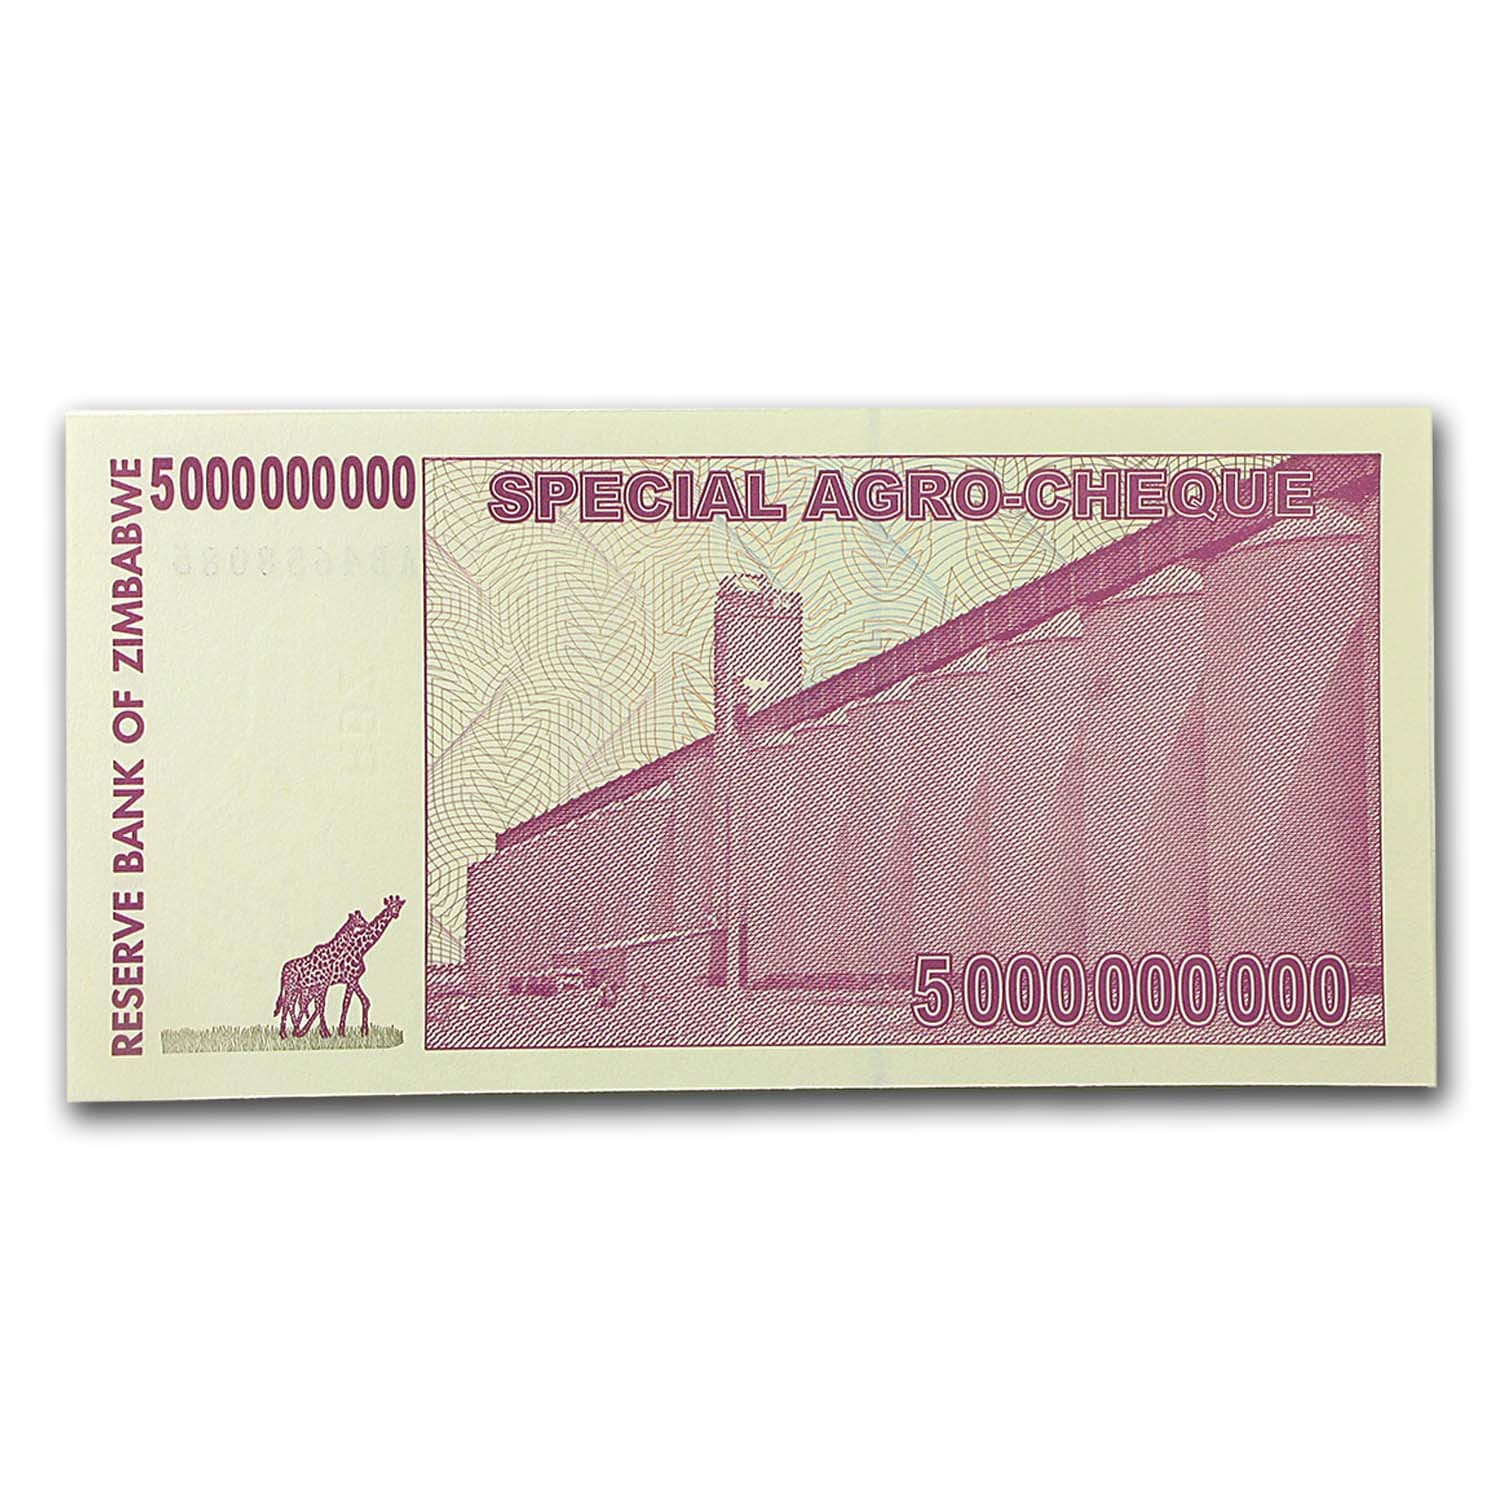 2008 Zimbabwe 5 Billion Dollars Giraffe Grain Elevators Unc